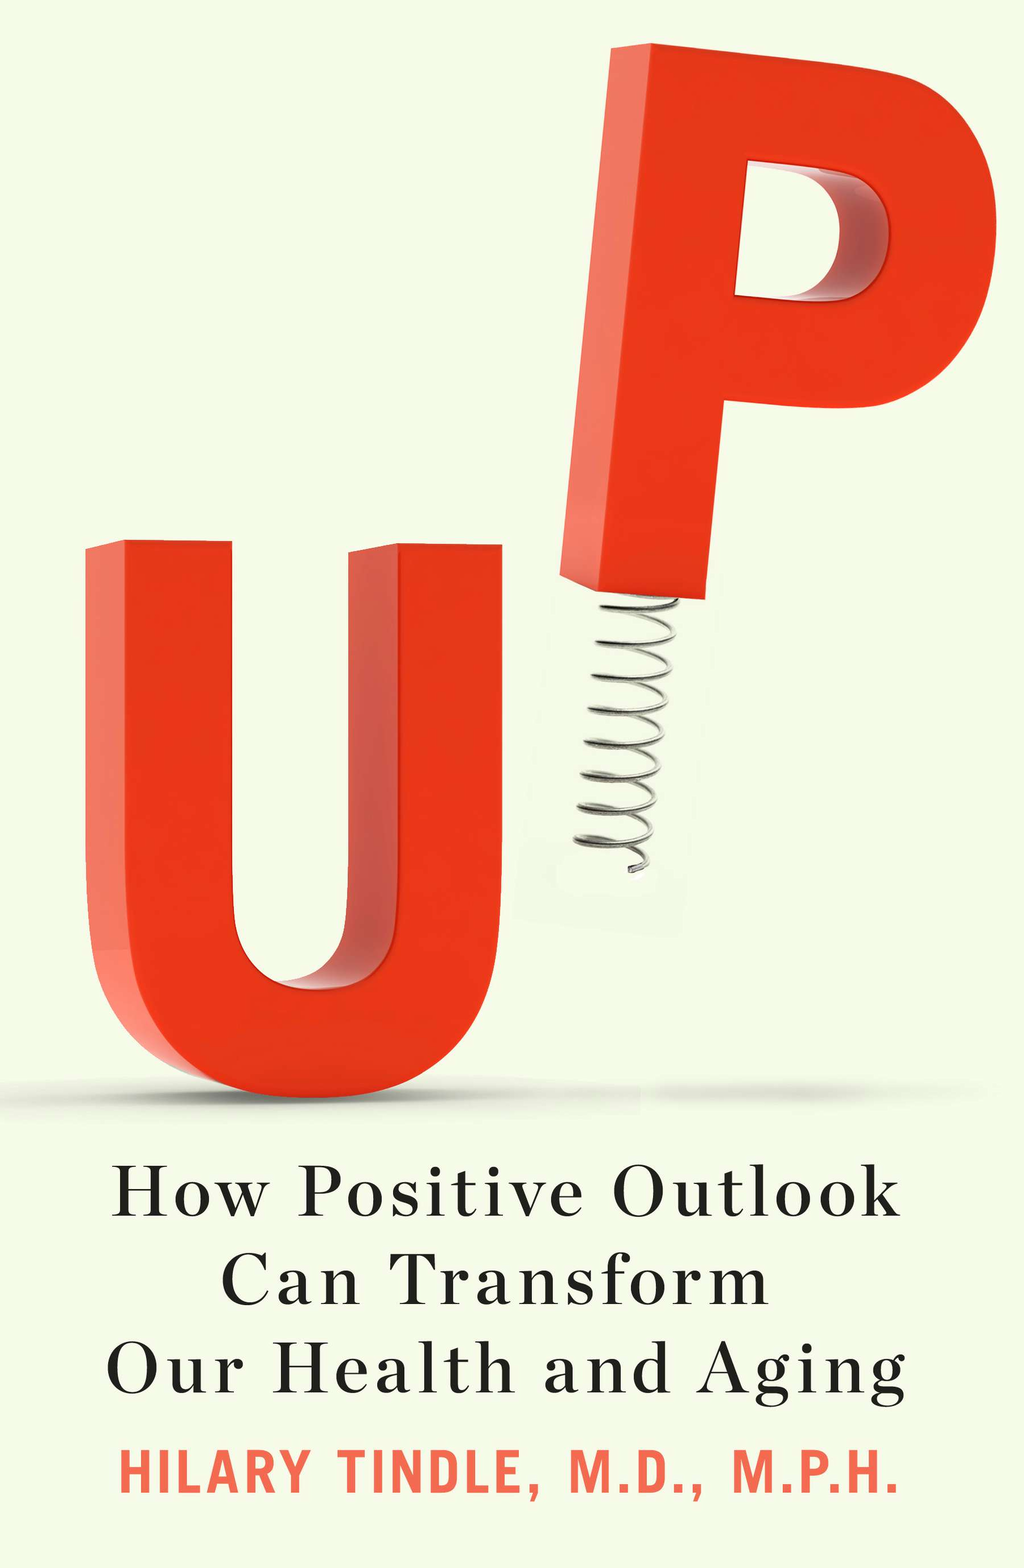 Up How Positive Outlook Can Transform Our Health and Aging